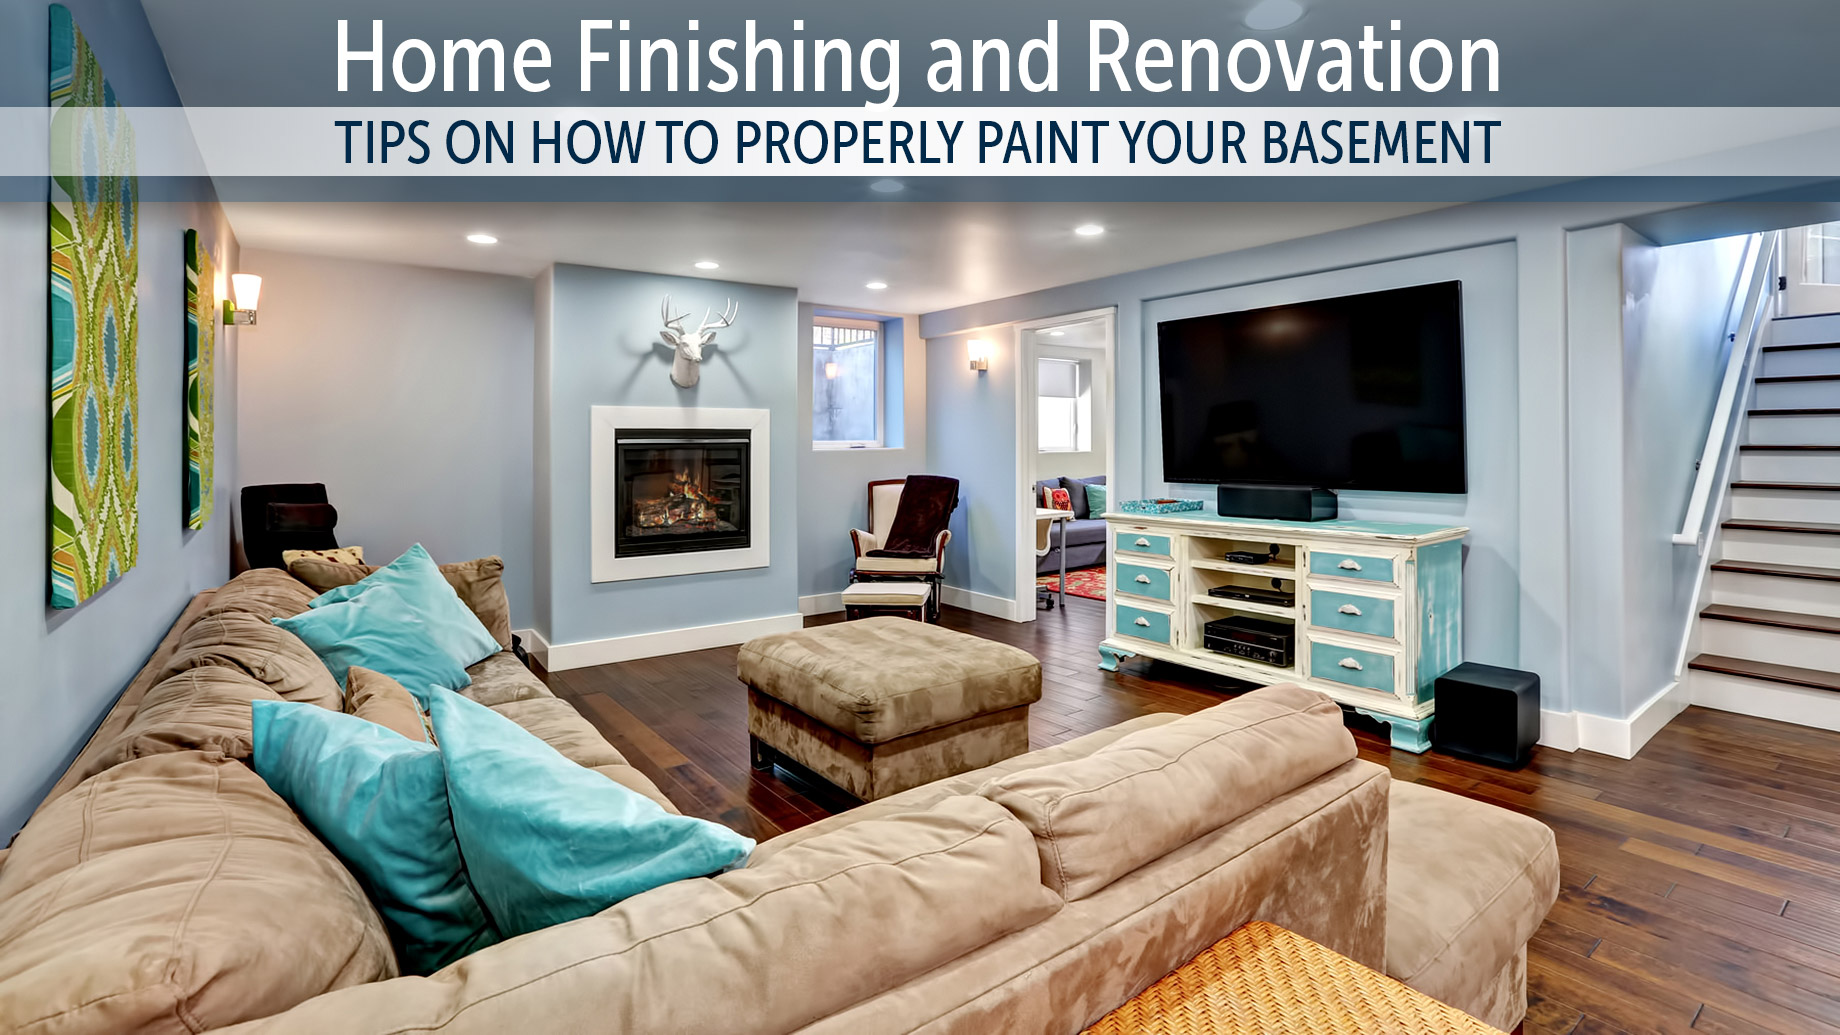 Home Finishing and Renovation - Tips on How to Properly Paint Your Basement